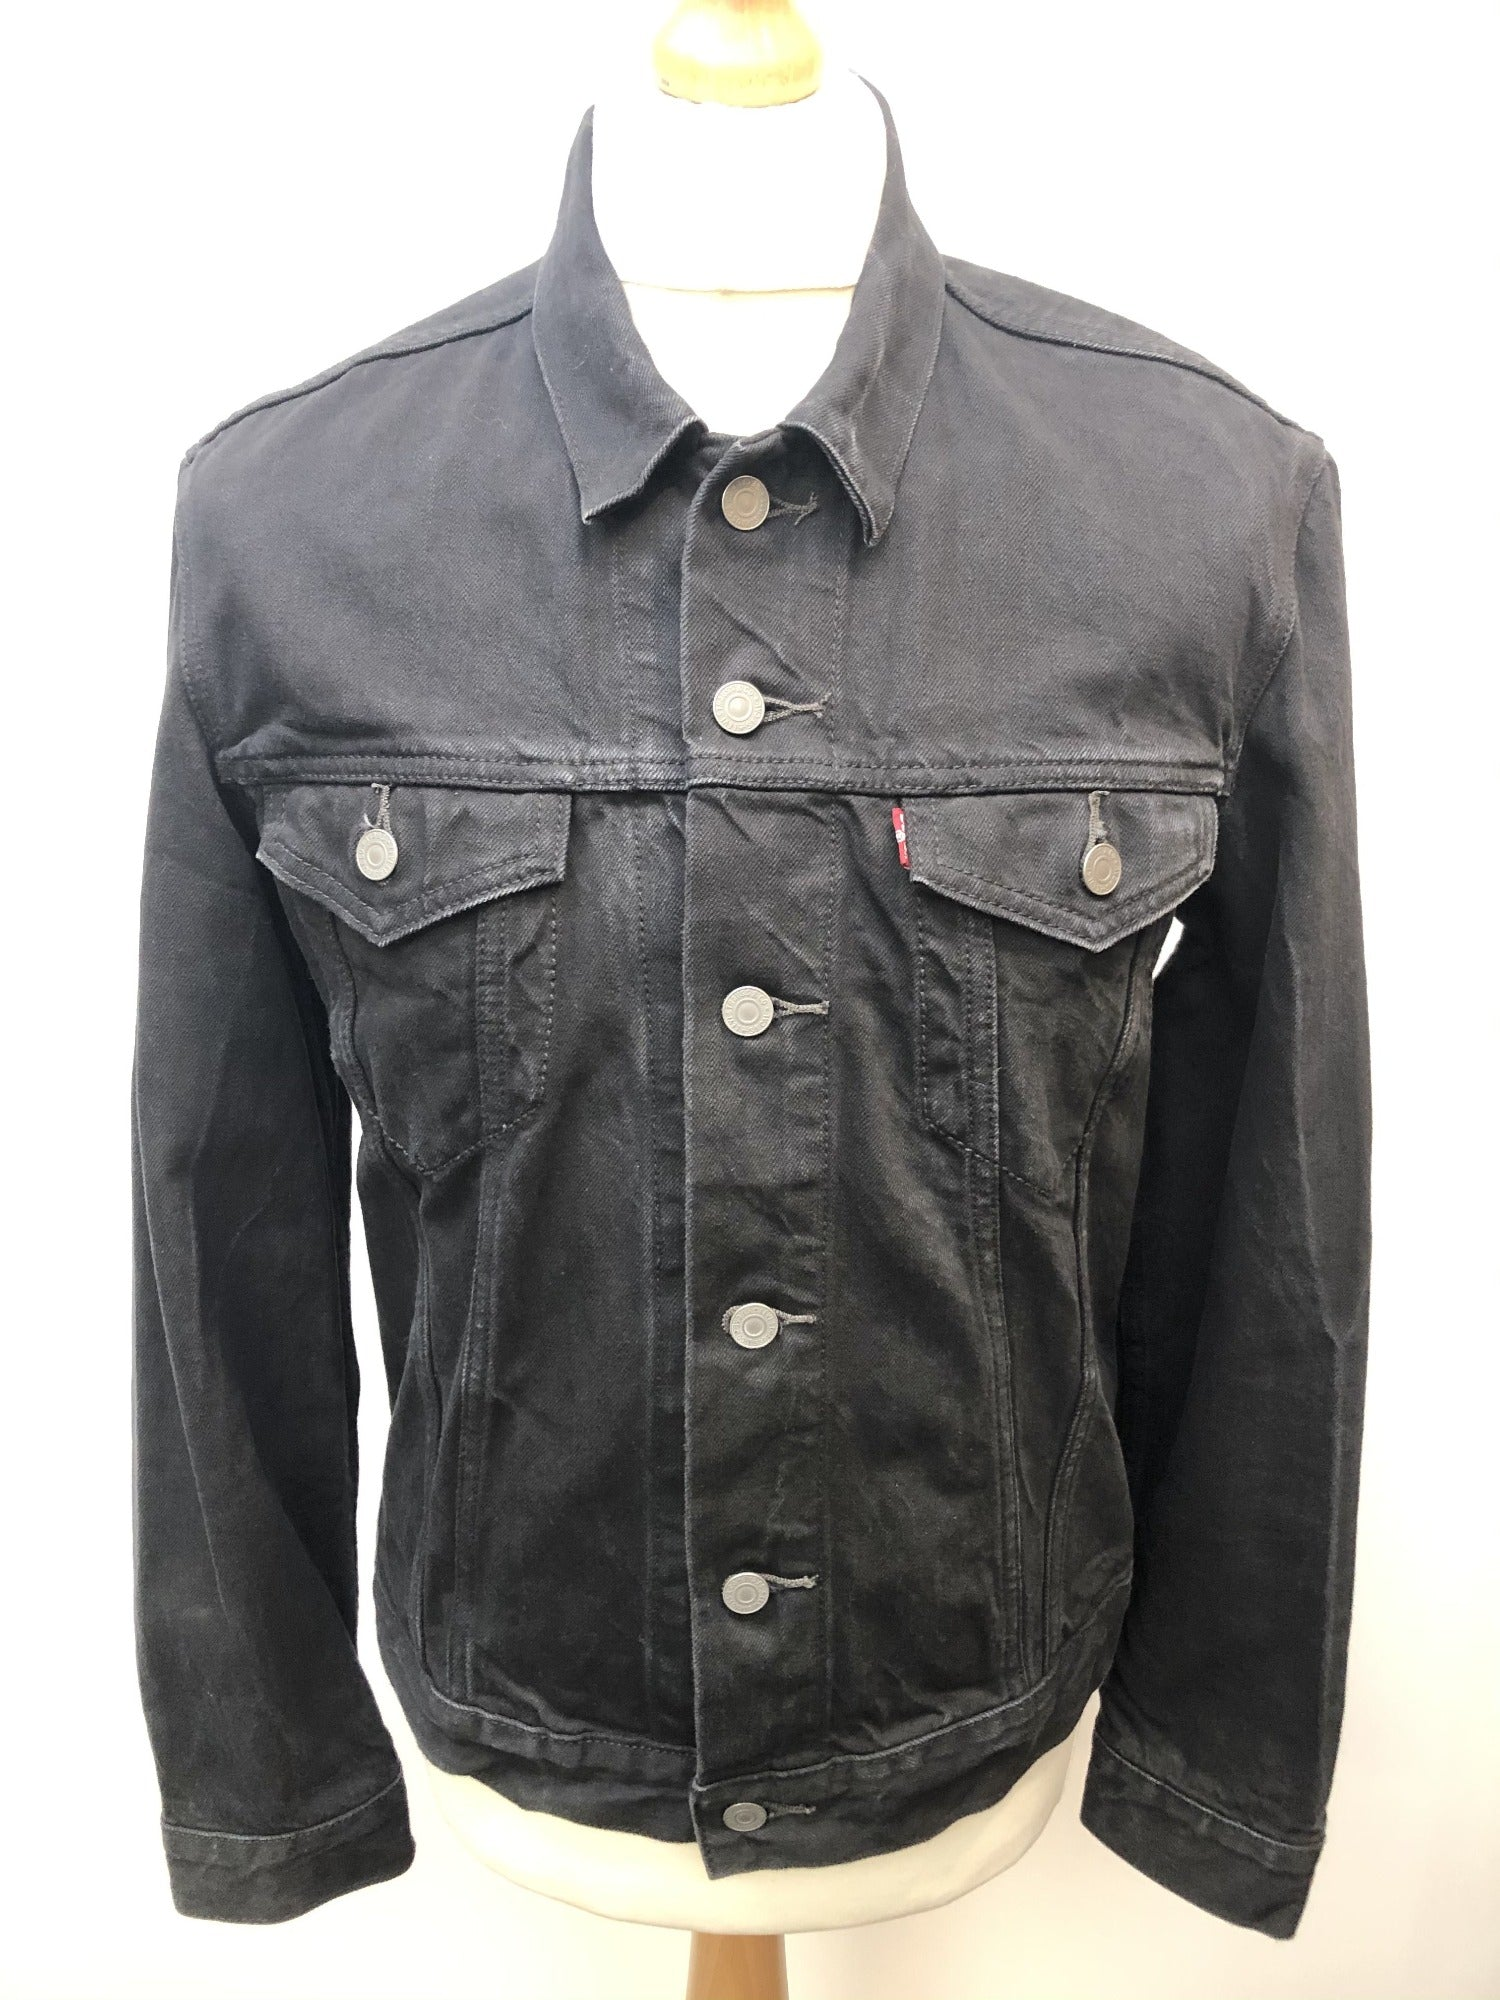 Mens Levis Denim Jacket - Black - Size L - Urban Village Vintage Denim